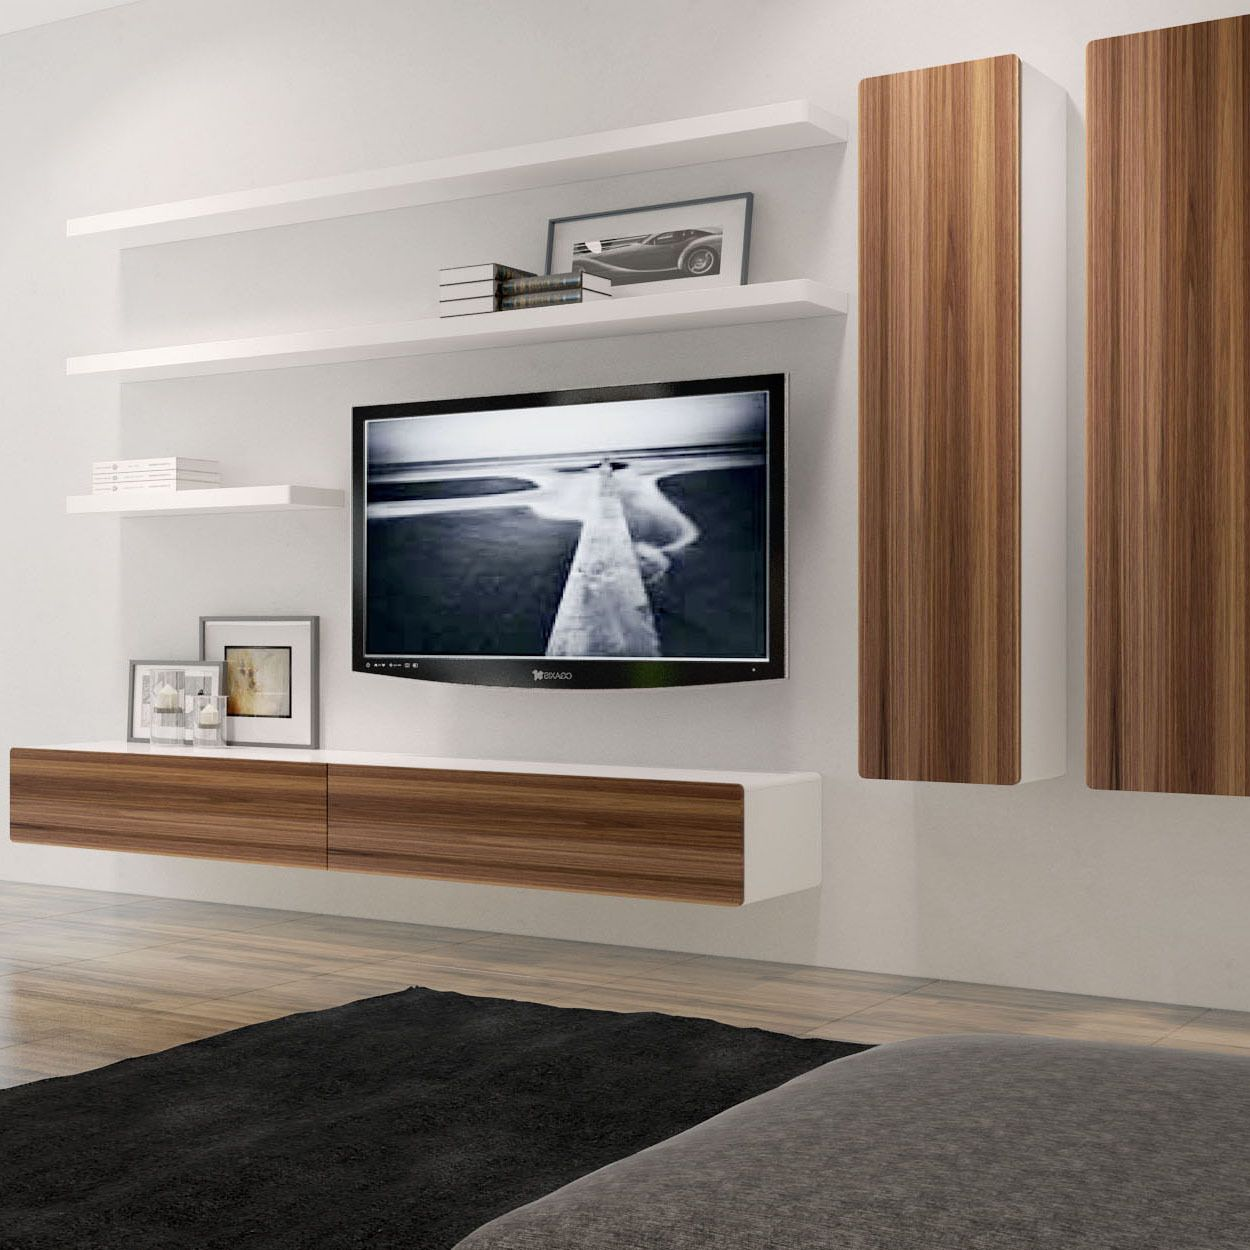 Wall Mounted Entertainment Unit This Charming Floating Composition Which Combines The